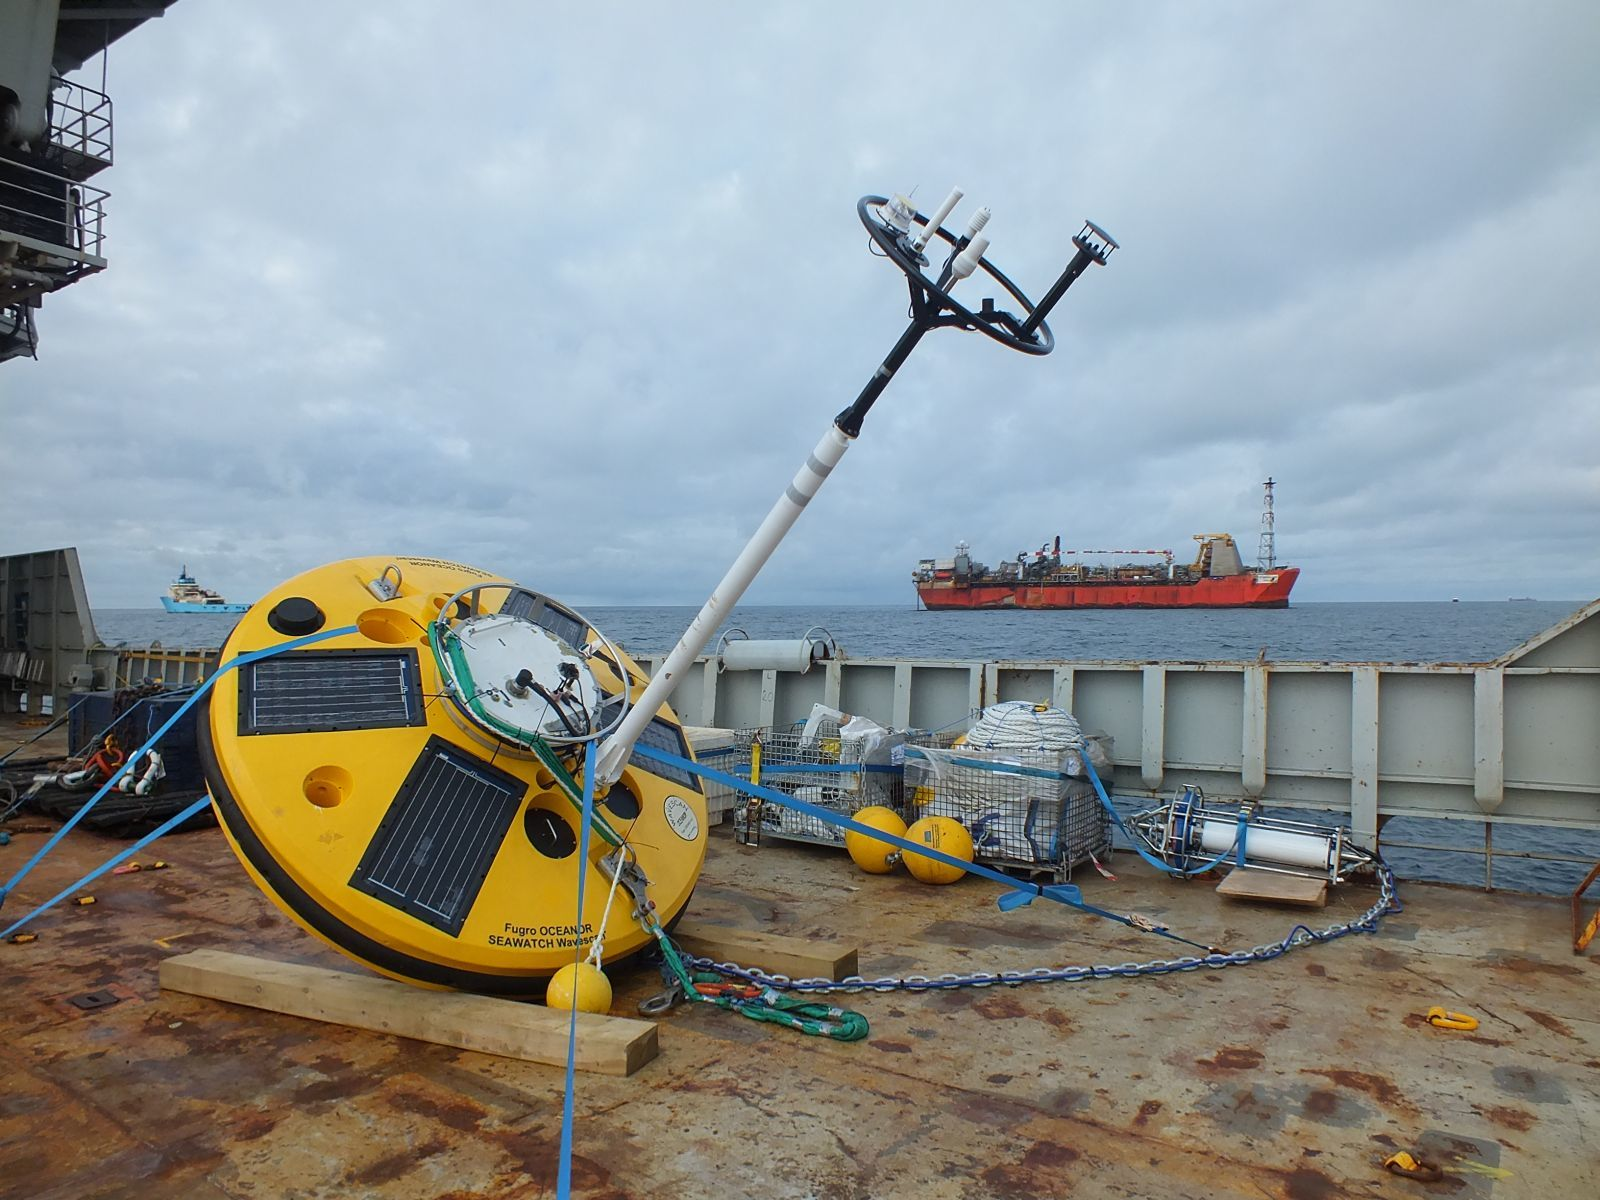 Wavescan buoy ready for deployment on board the Fugro Symphony